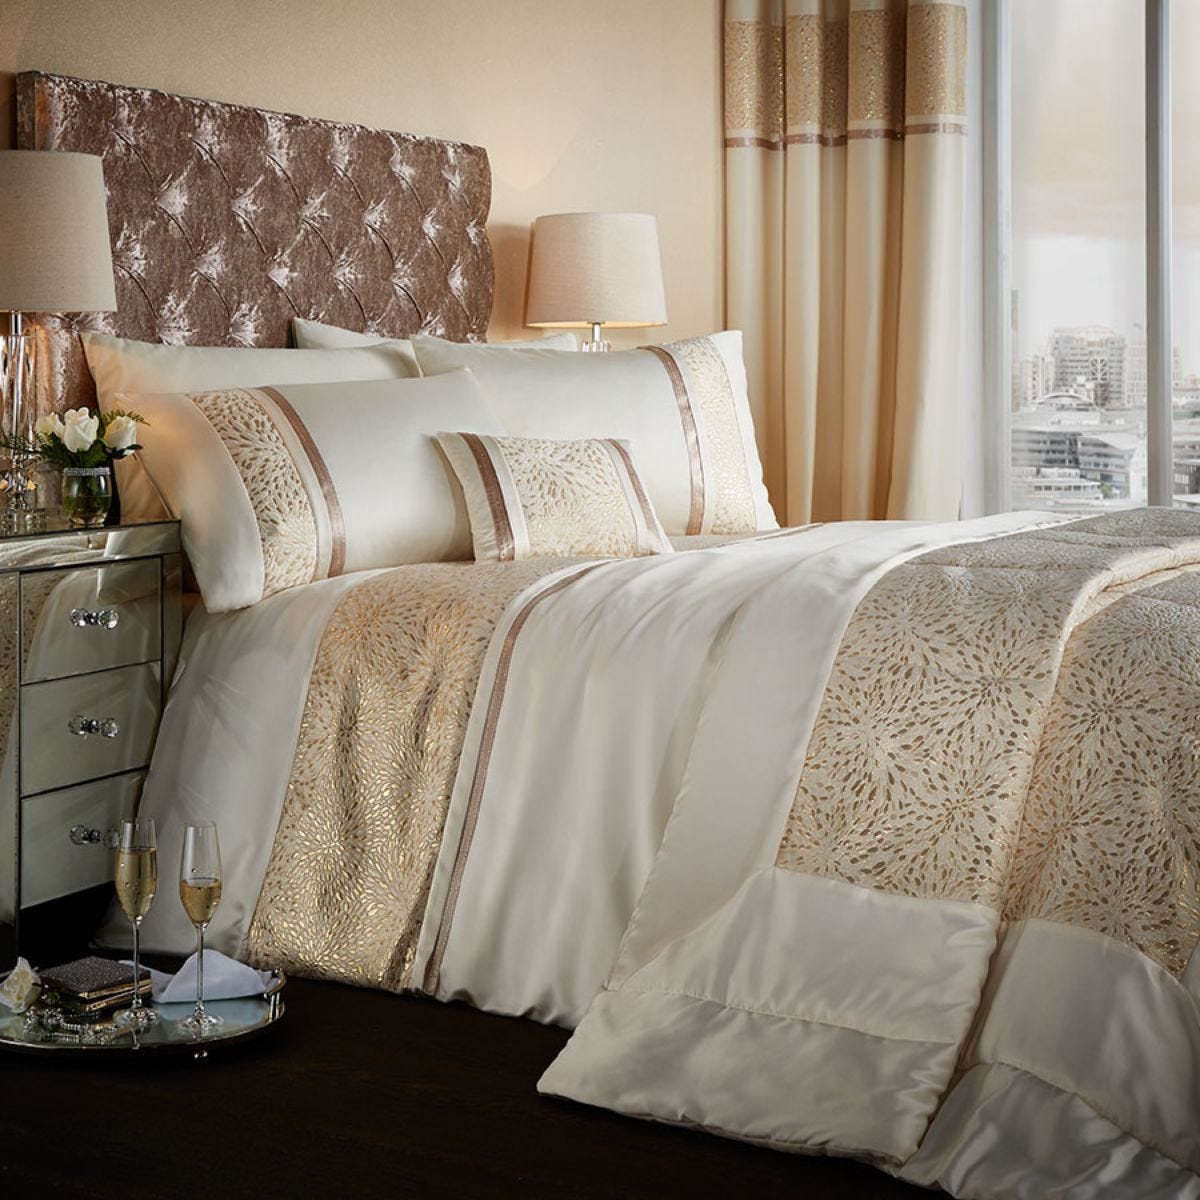 Catherine Lansfield Luxor Jacquard Bed Set - Gold